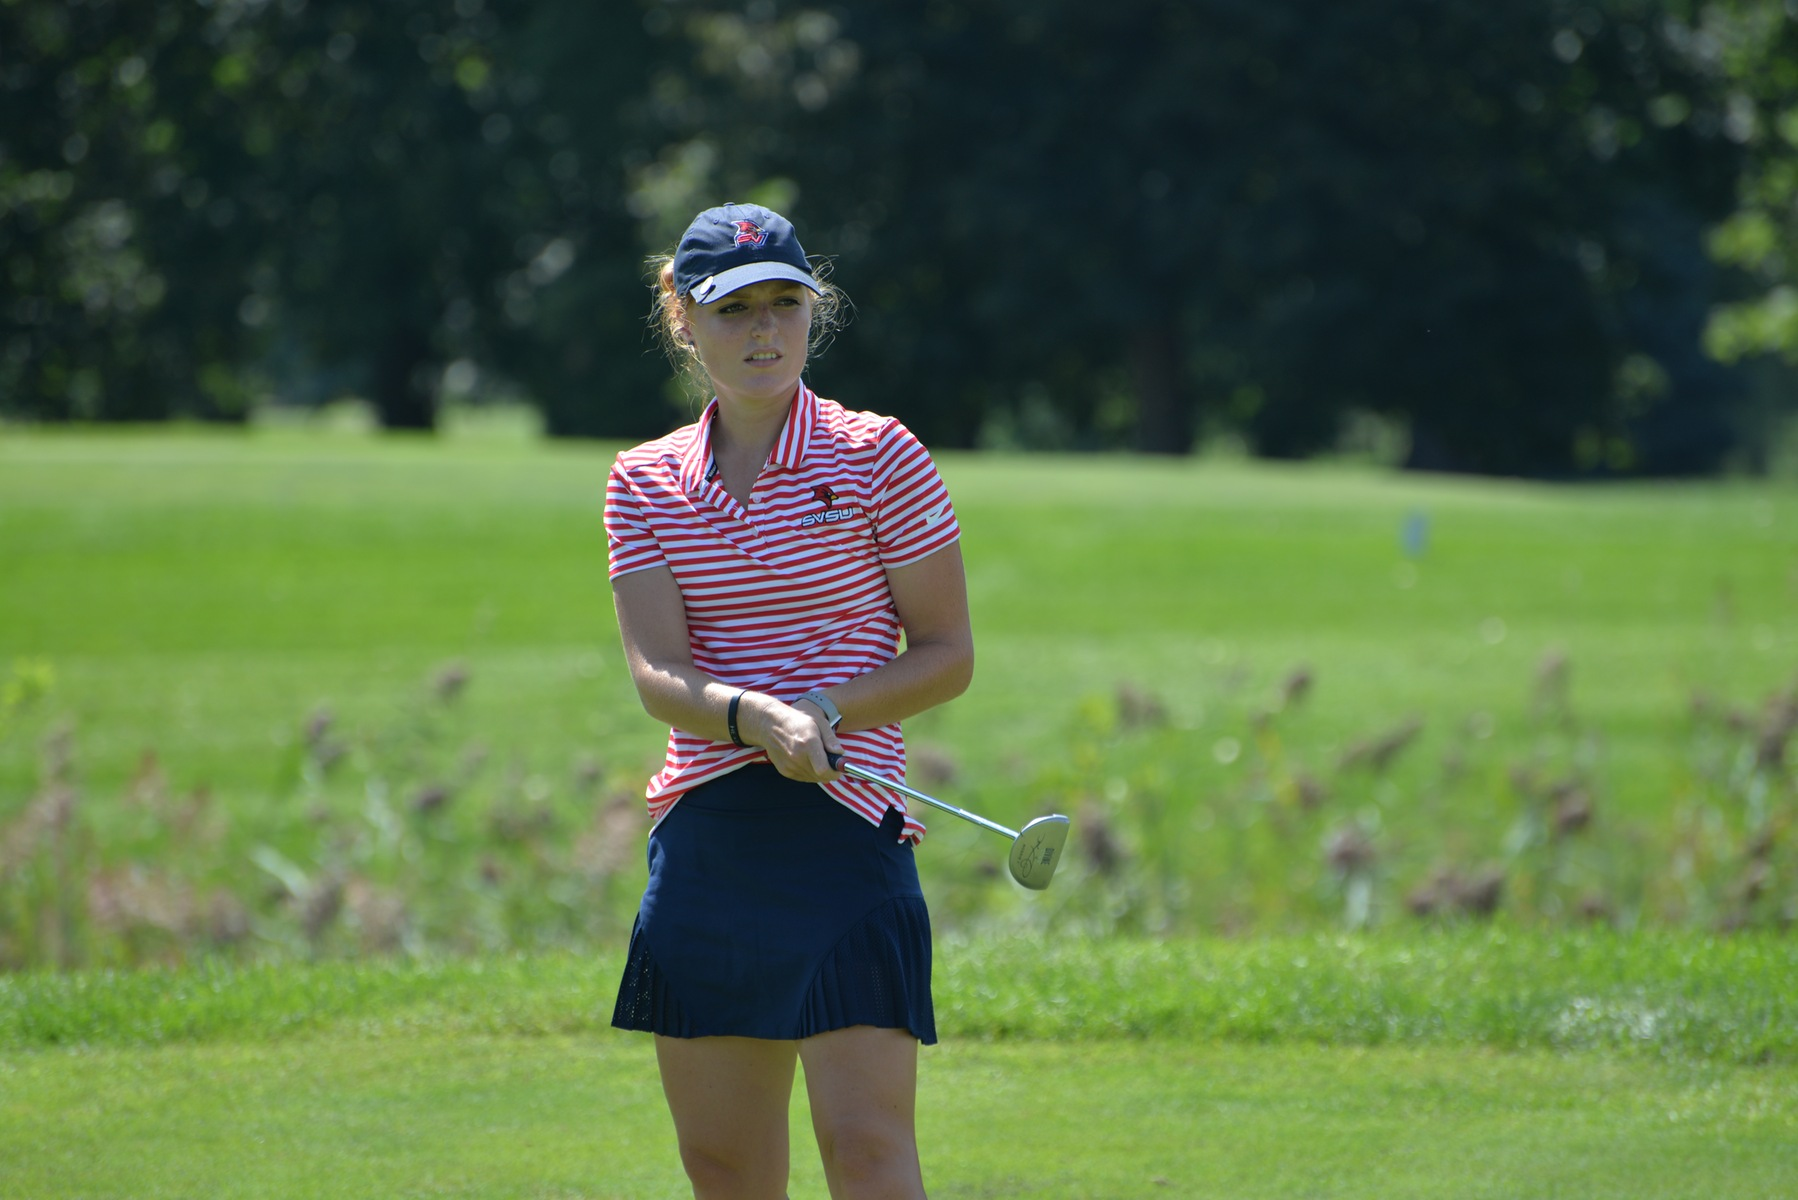 SVSU sits 9th after opening round at William Beall Fall Classic